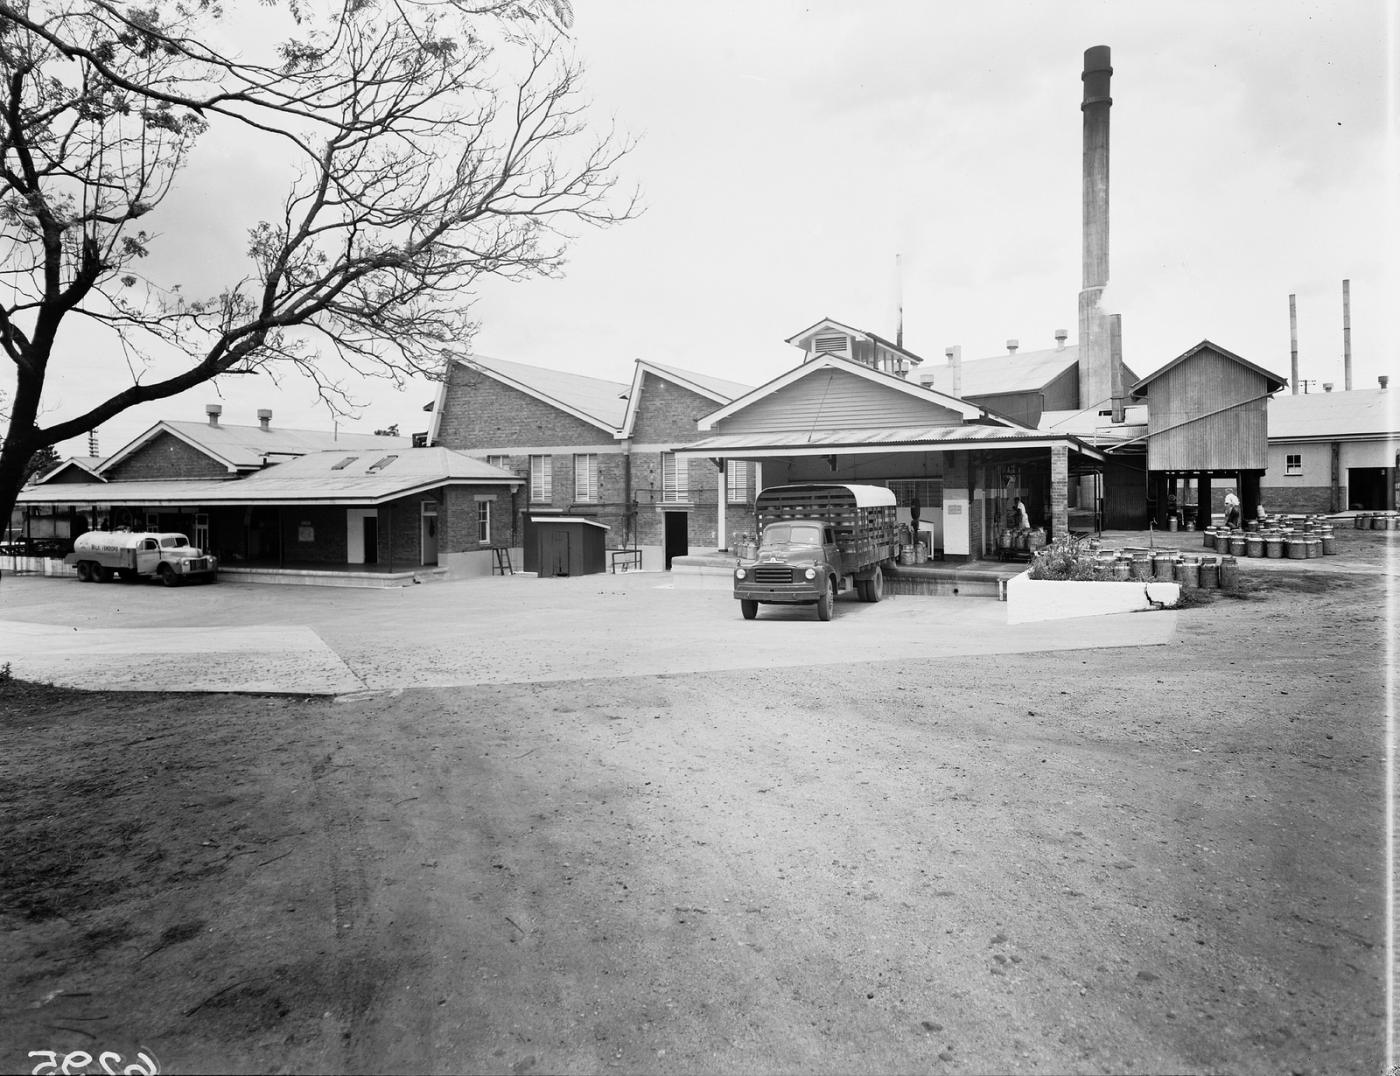 Exterior of a 1950s dairy viewing the car park and exterior of the mil factory